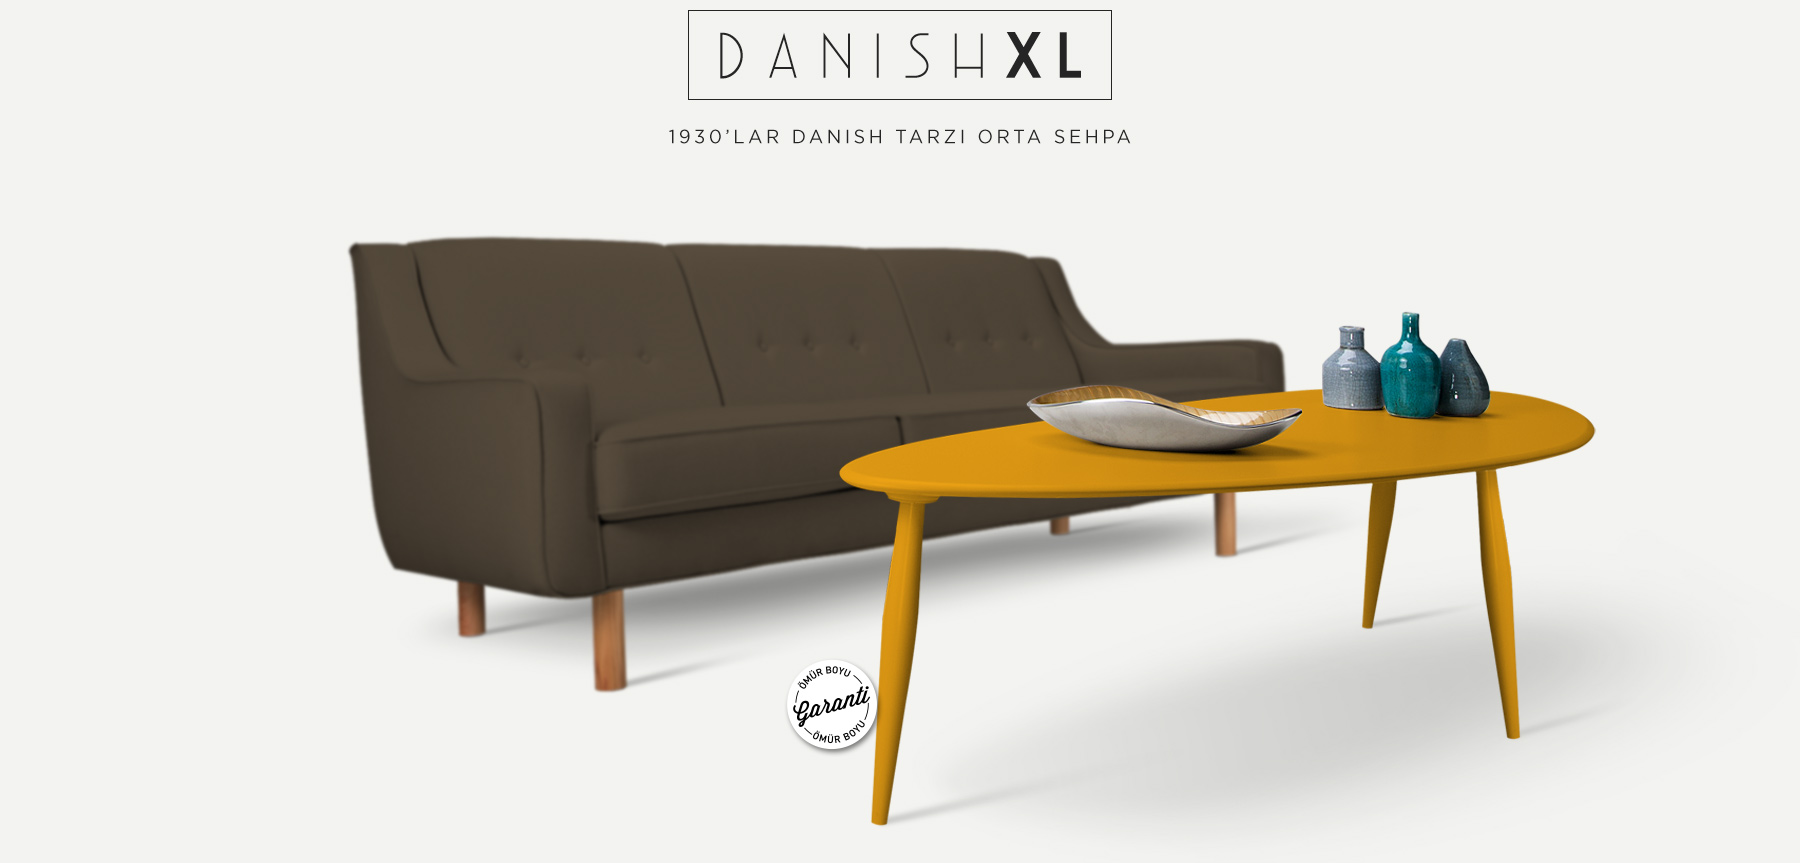 DANISH™ XL Hardal Orta Sehpa'in resmi